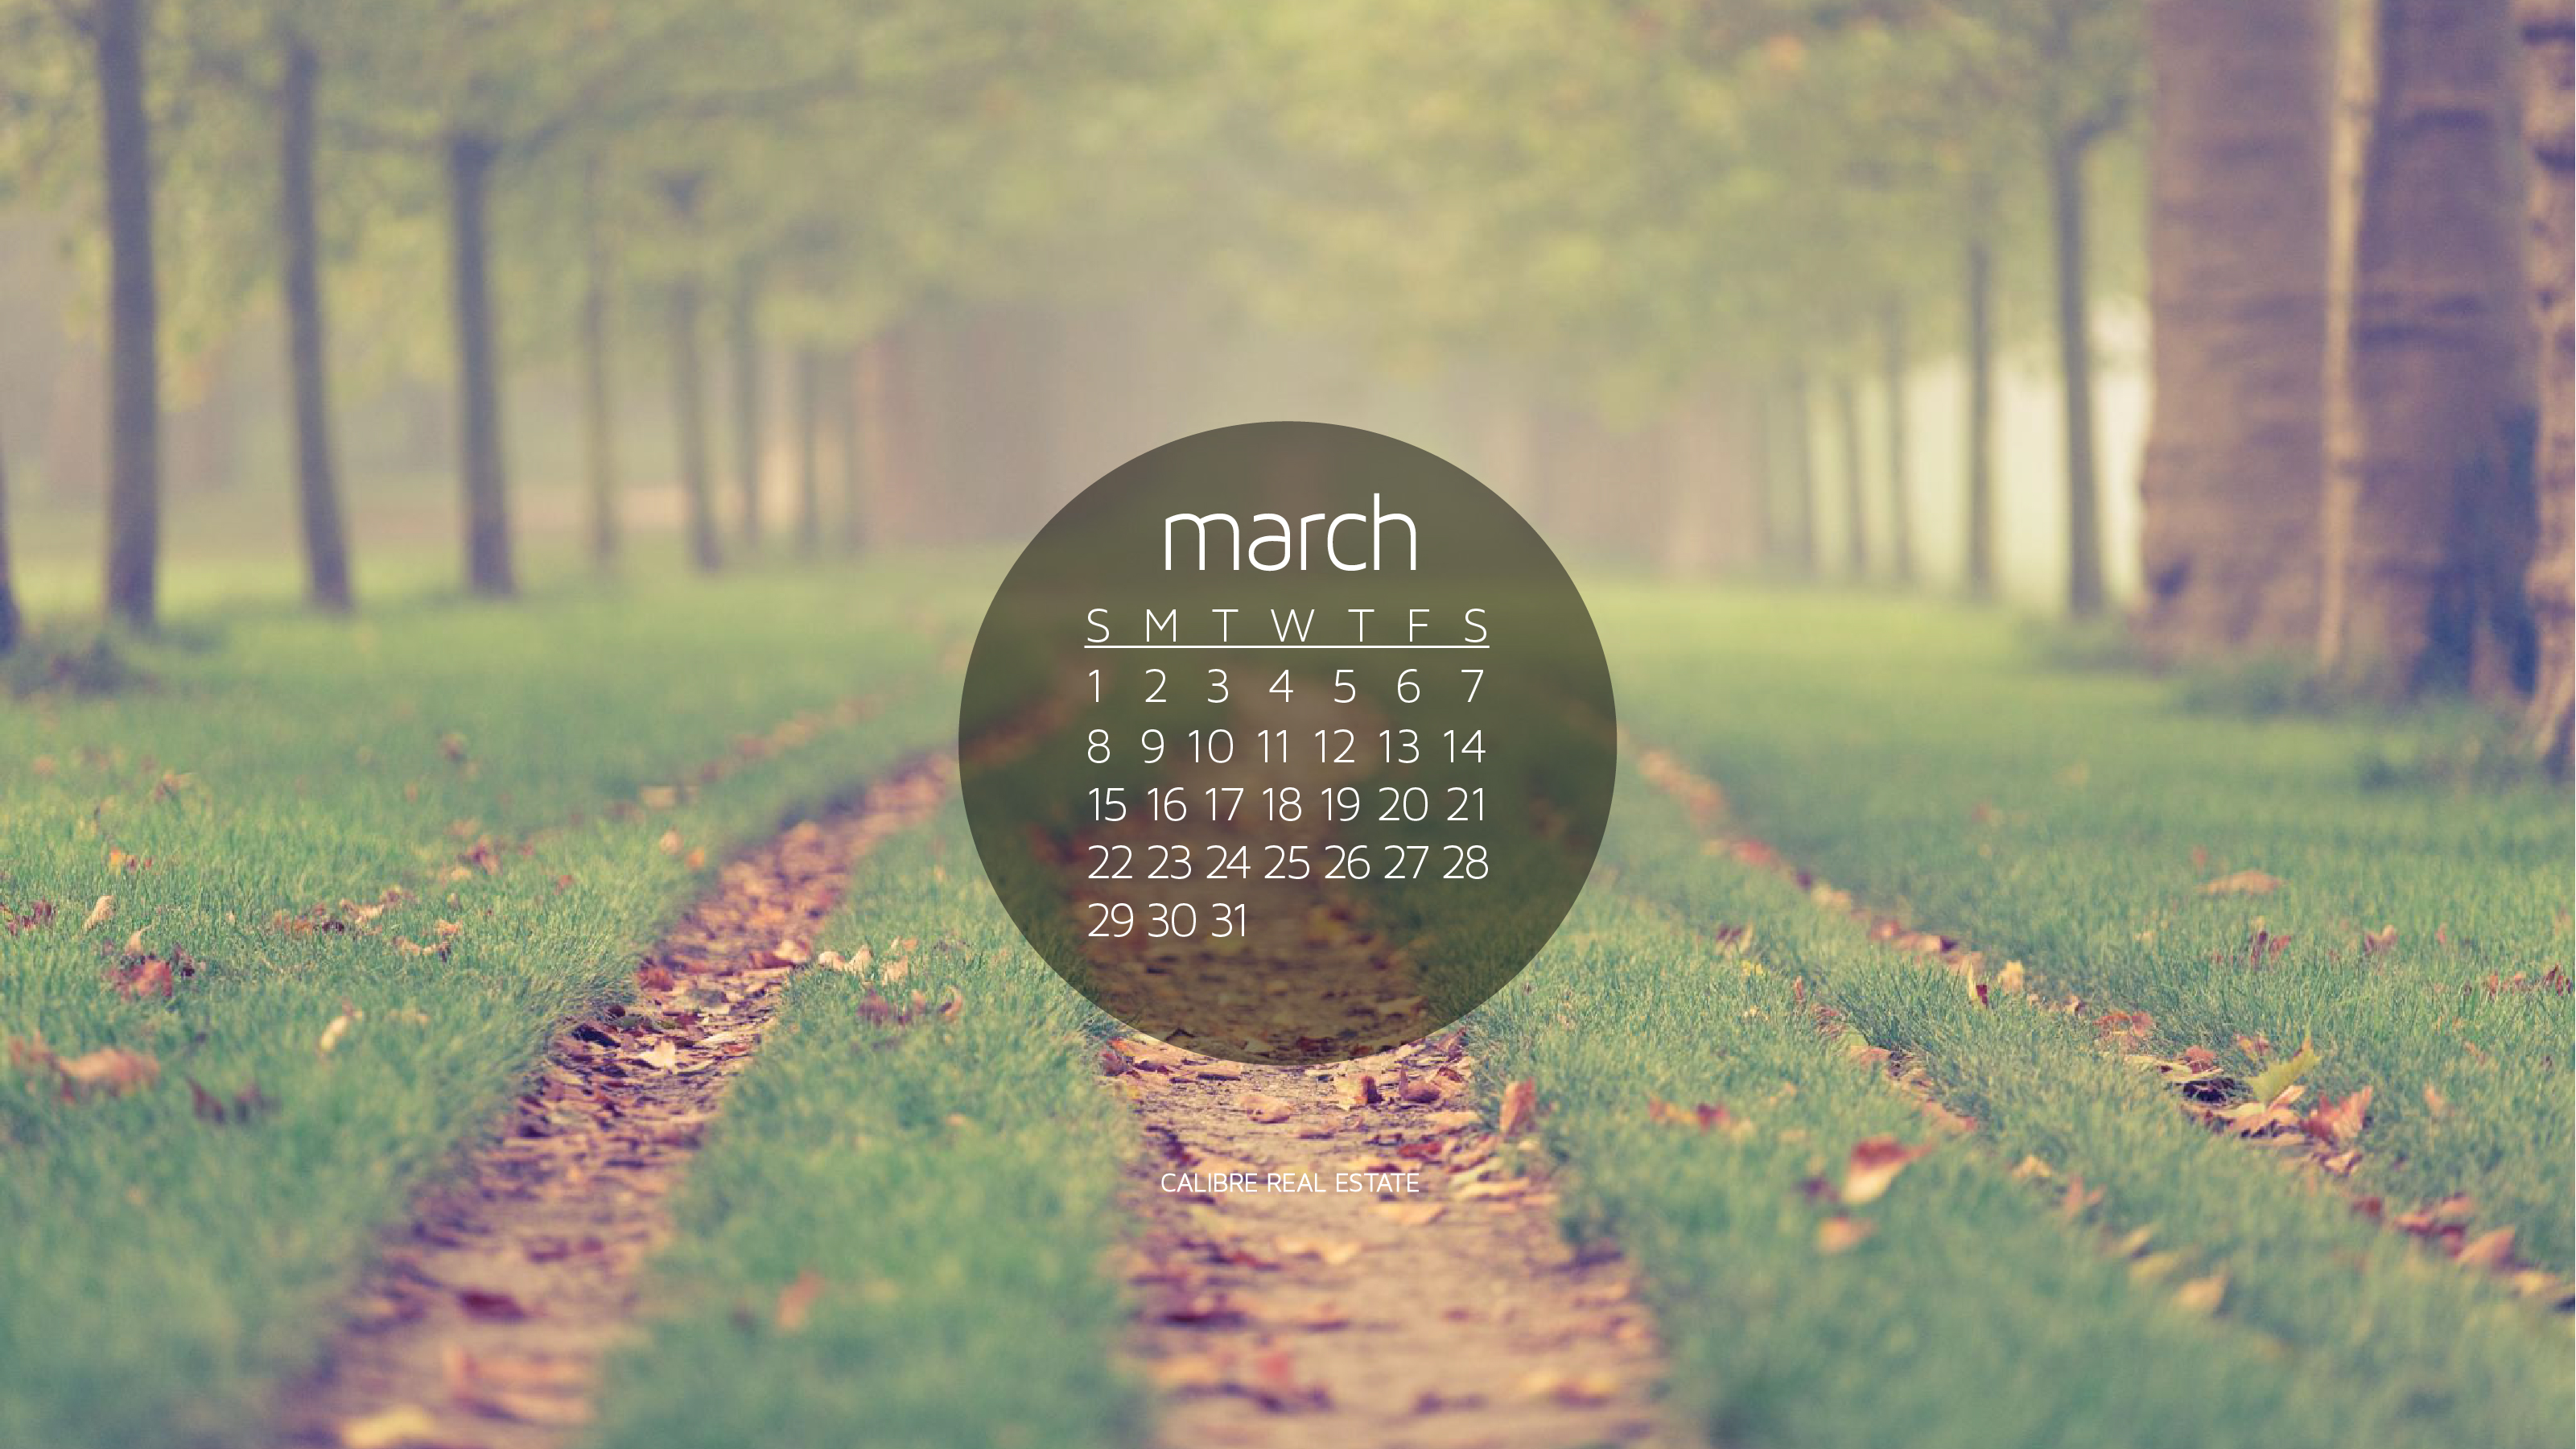 march 2015 calendar wallpaper